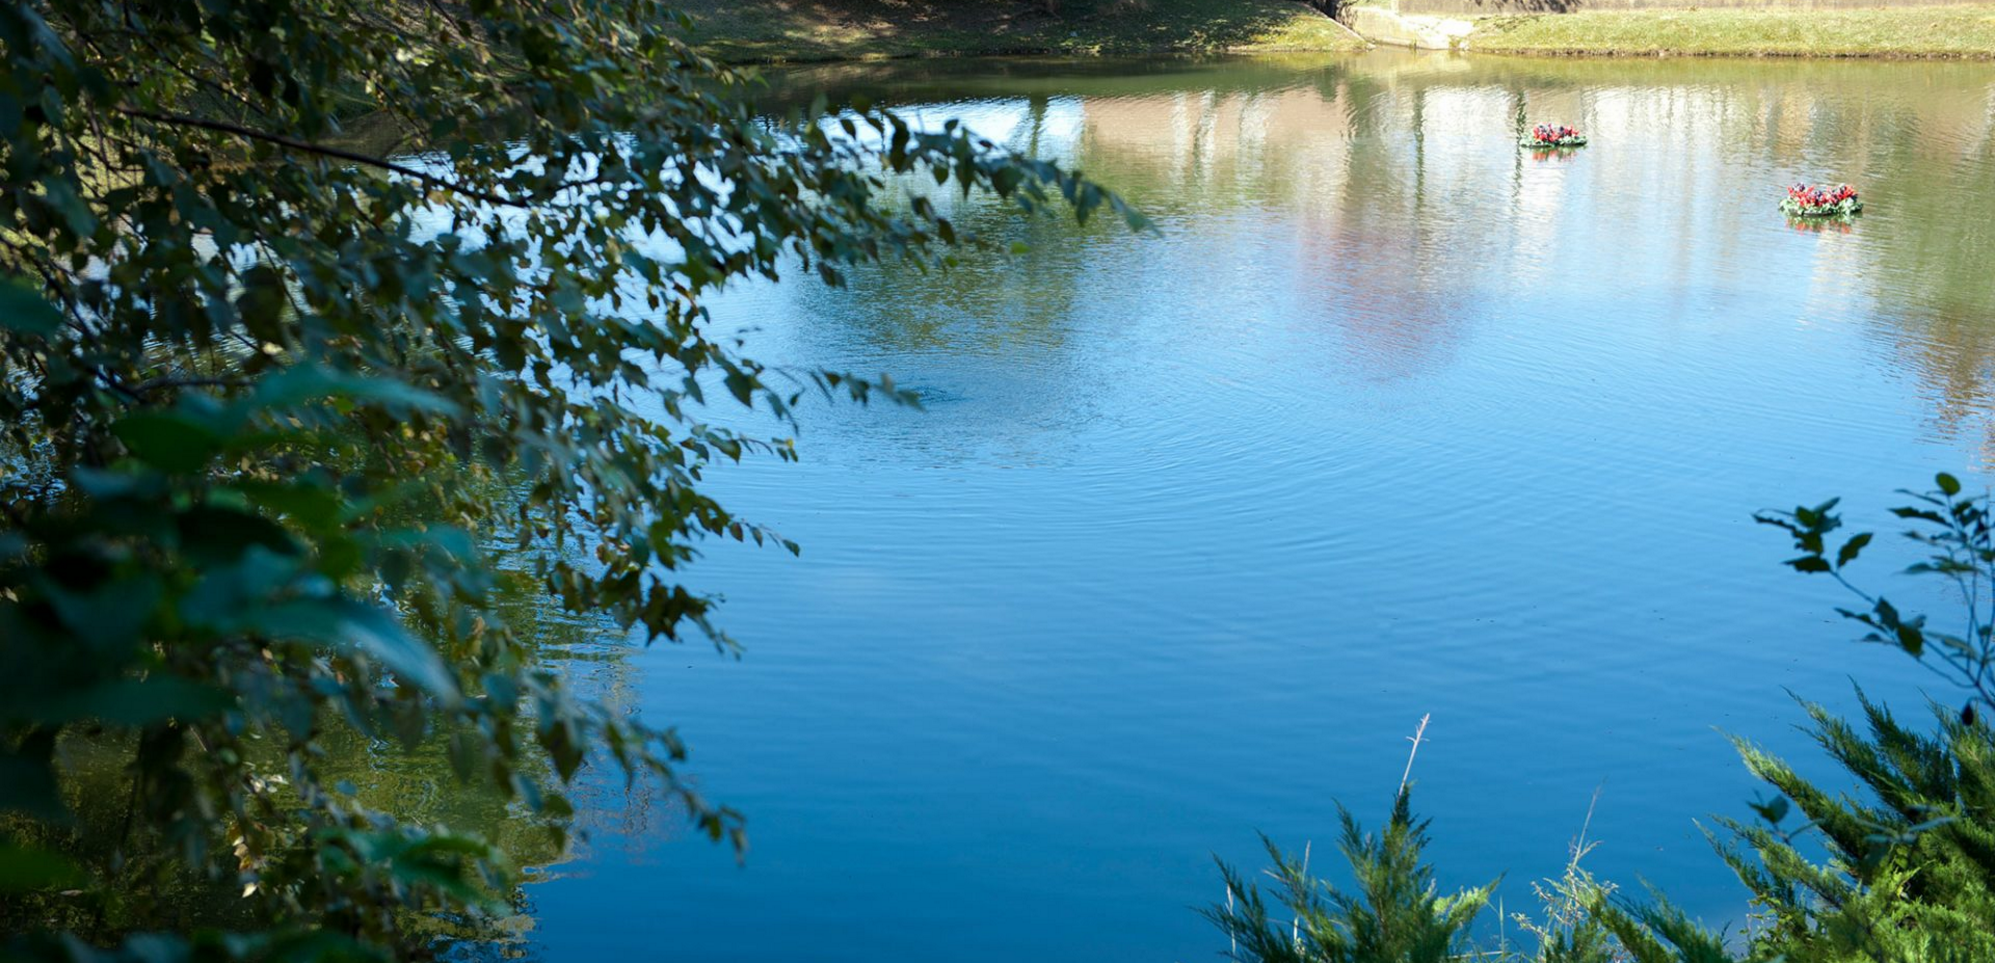 View of a lake from the woods